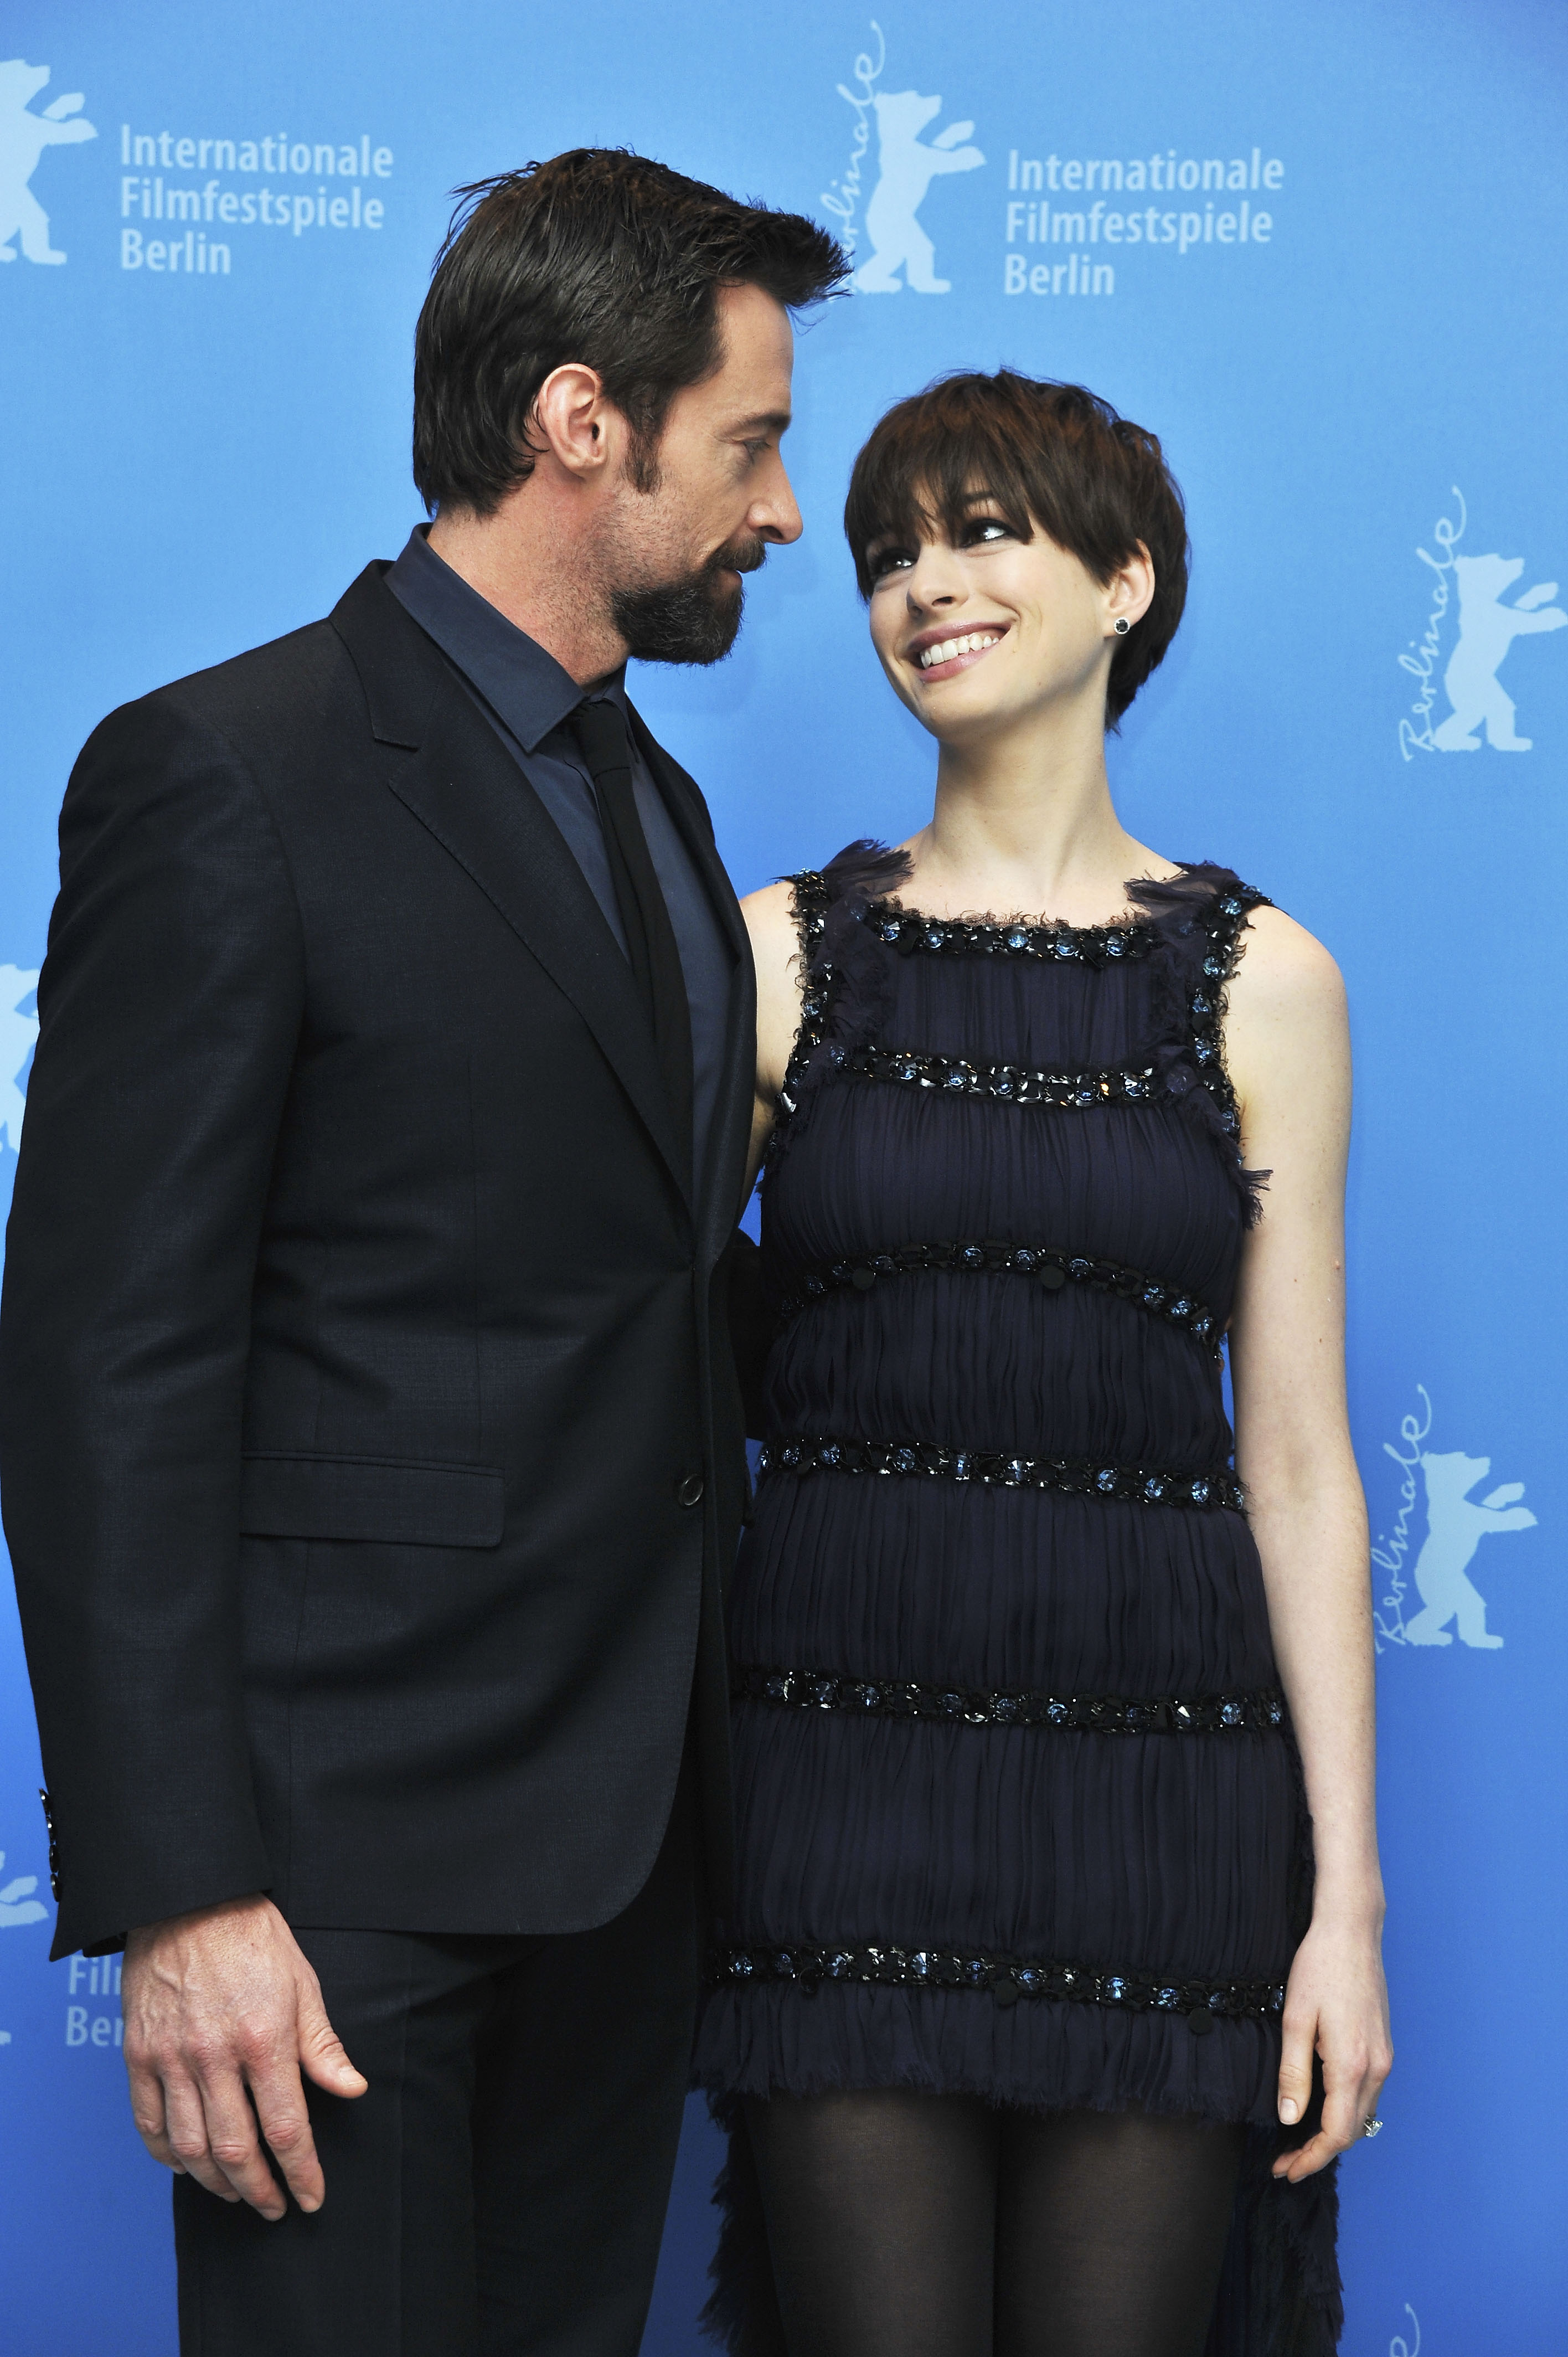 Chanel-clad Anne Hathaway linked up with Hugh Jackman at the Berlin Film Festival.